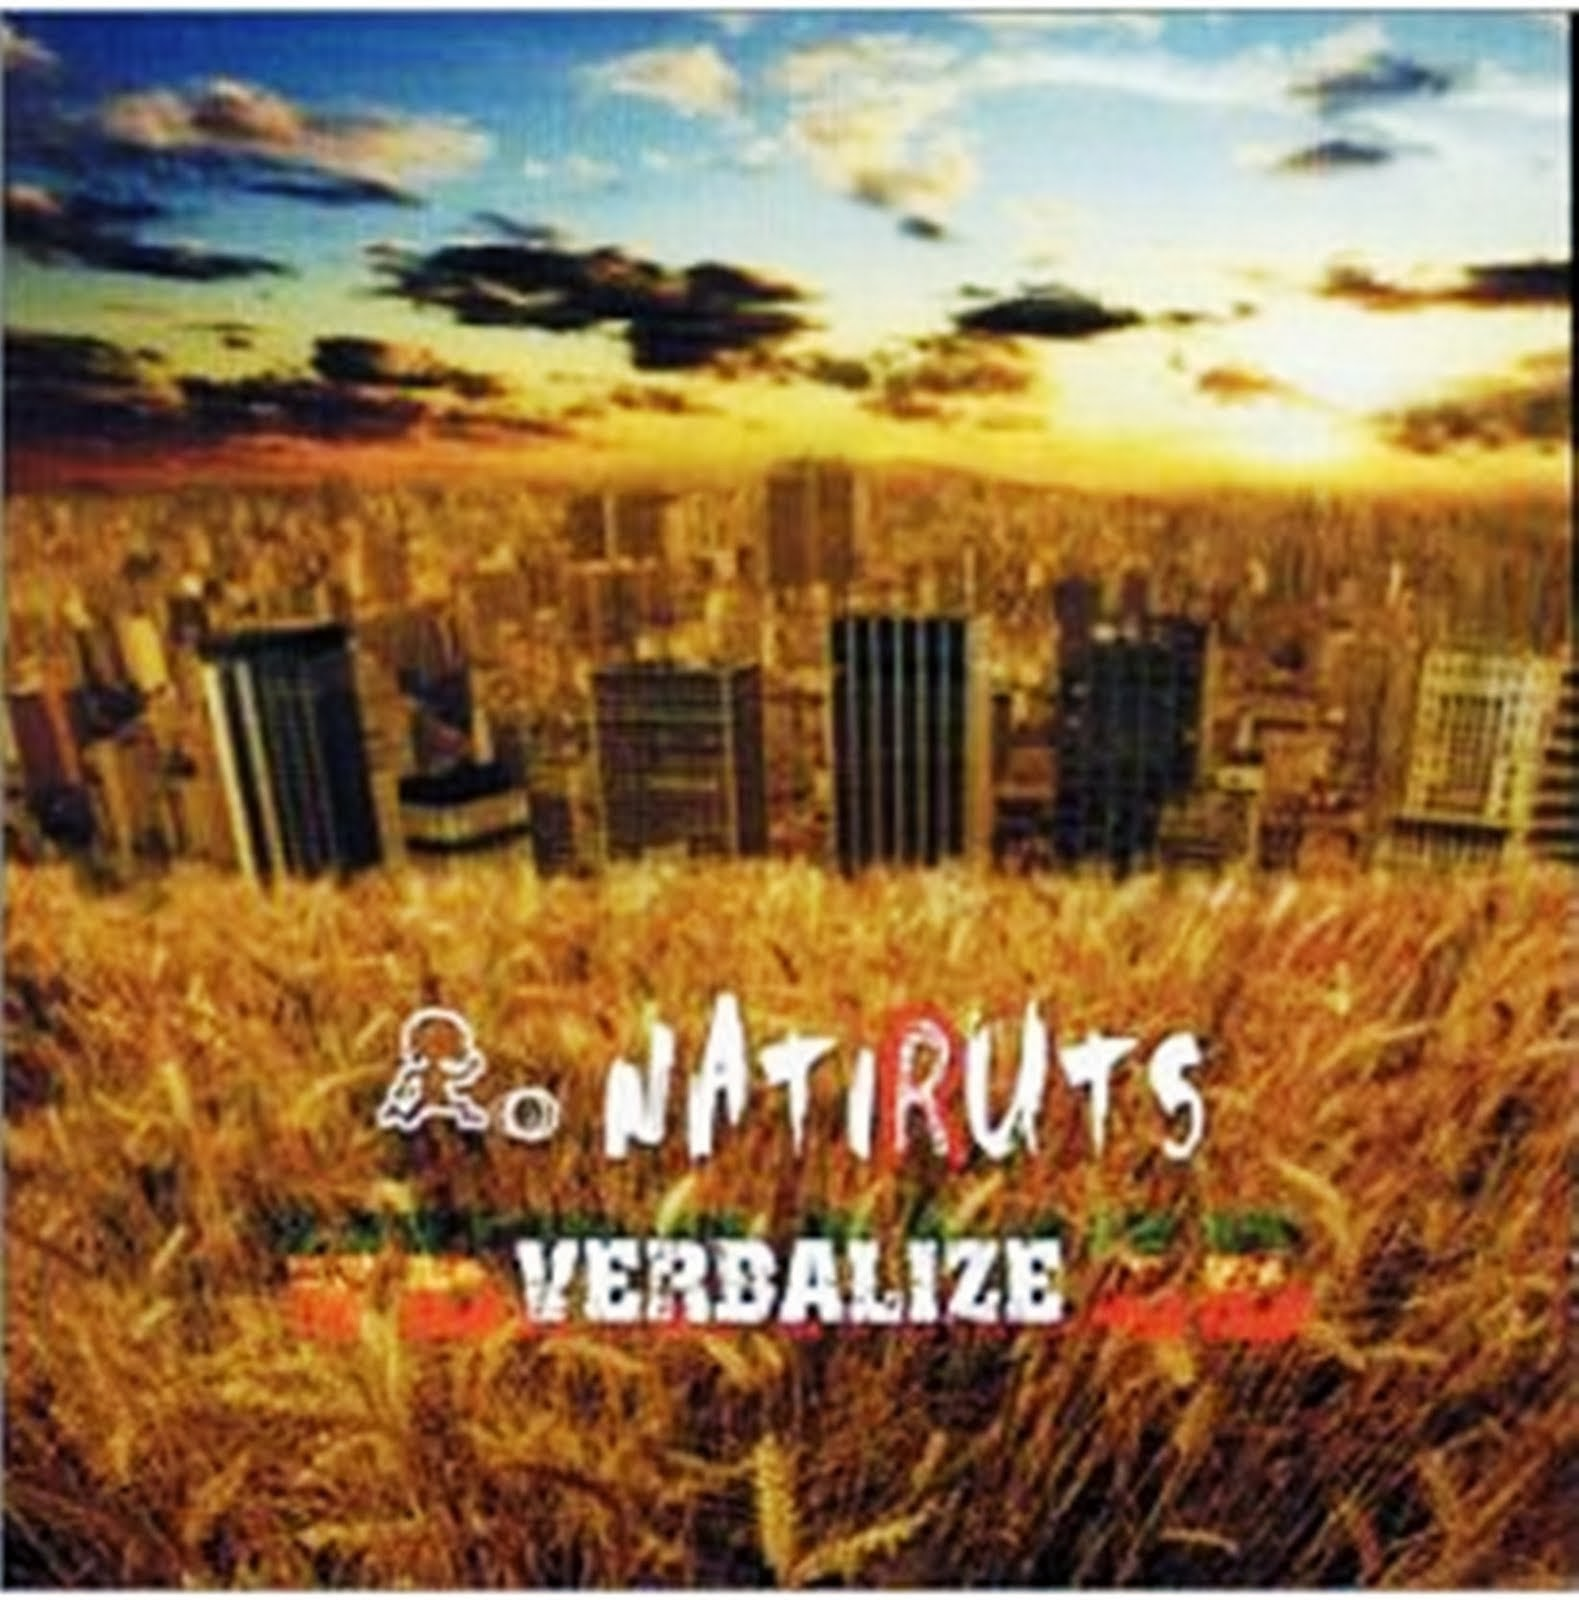 Natiruts - Verbalize CD Capa